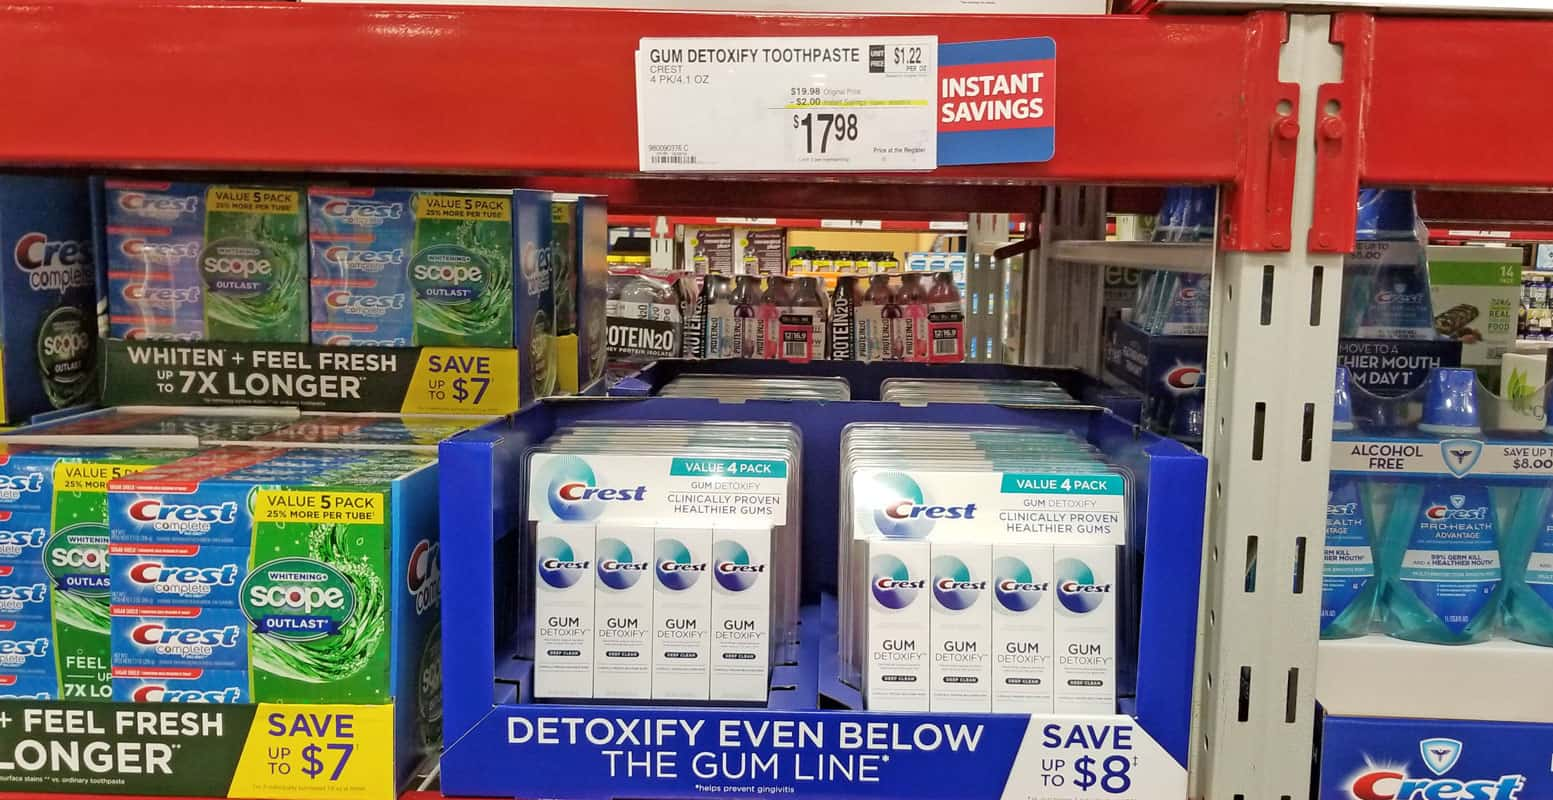 How To Improve Gum Health And Why It's Important with Crest Gum Detoxify In-store at Sam's Club